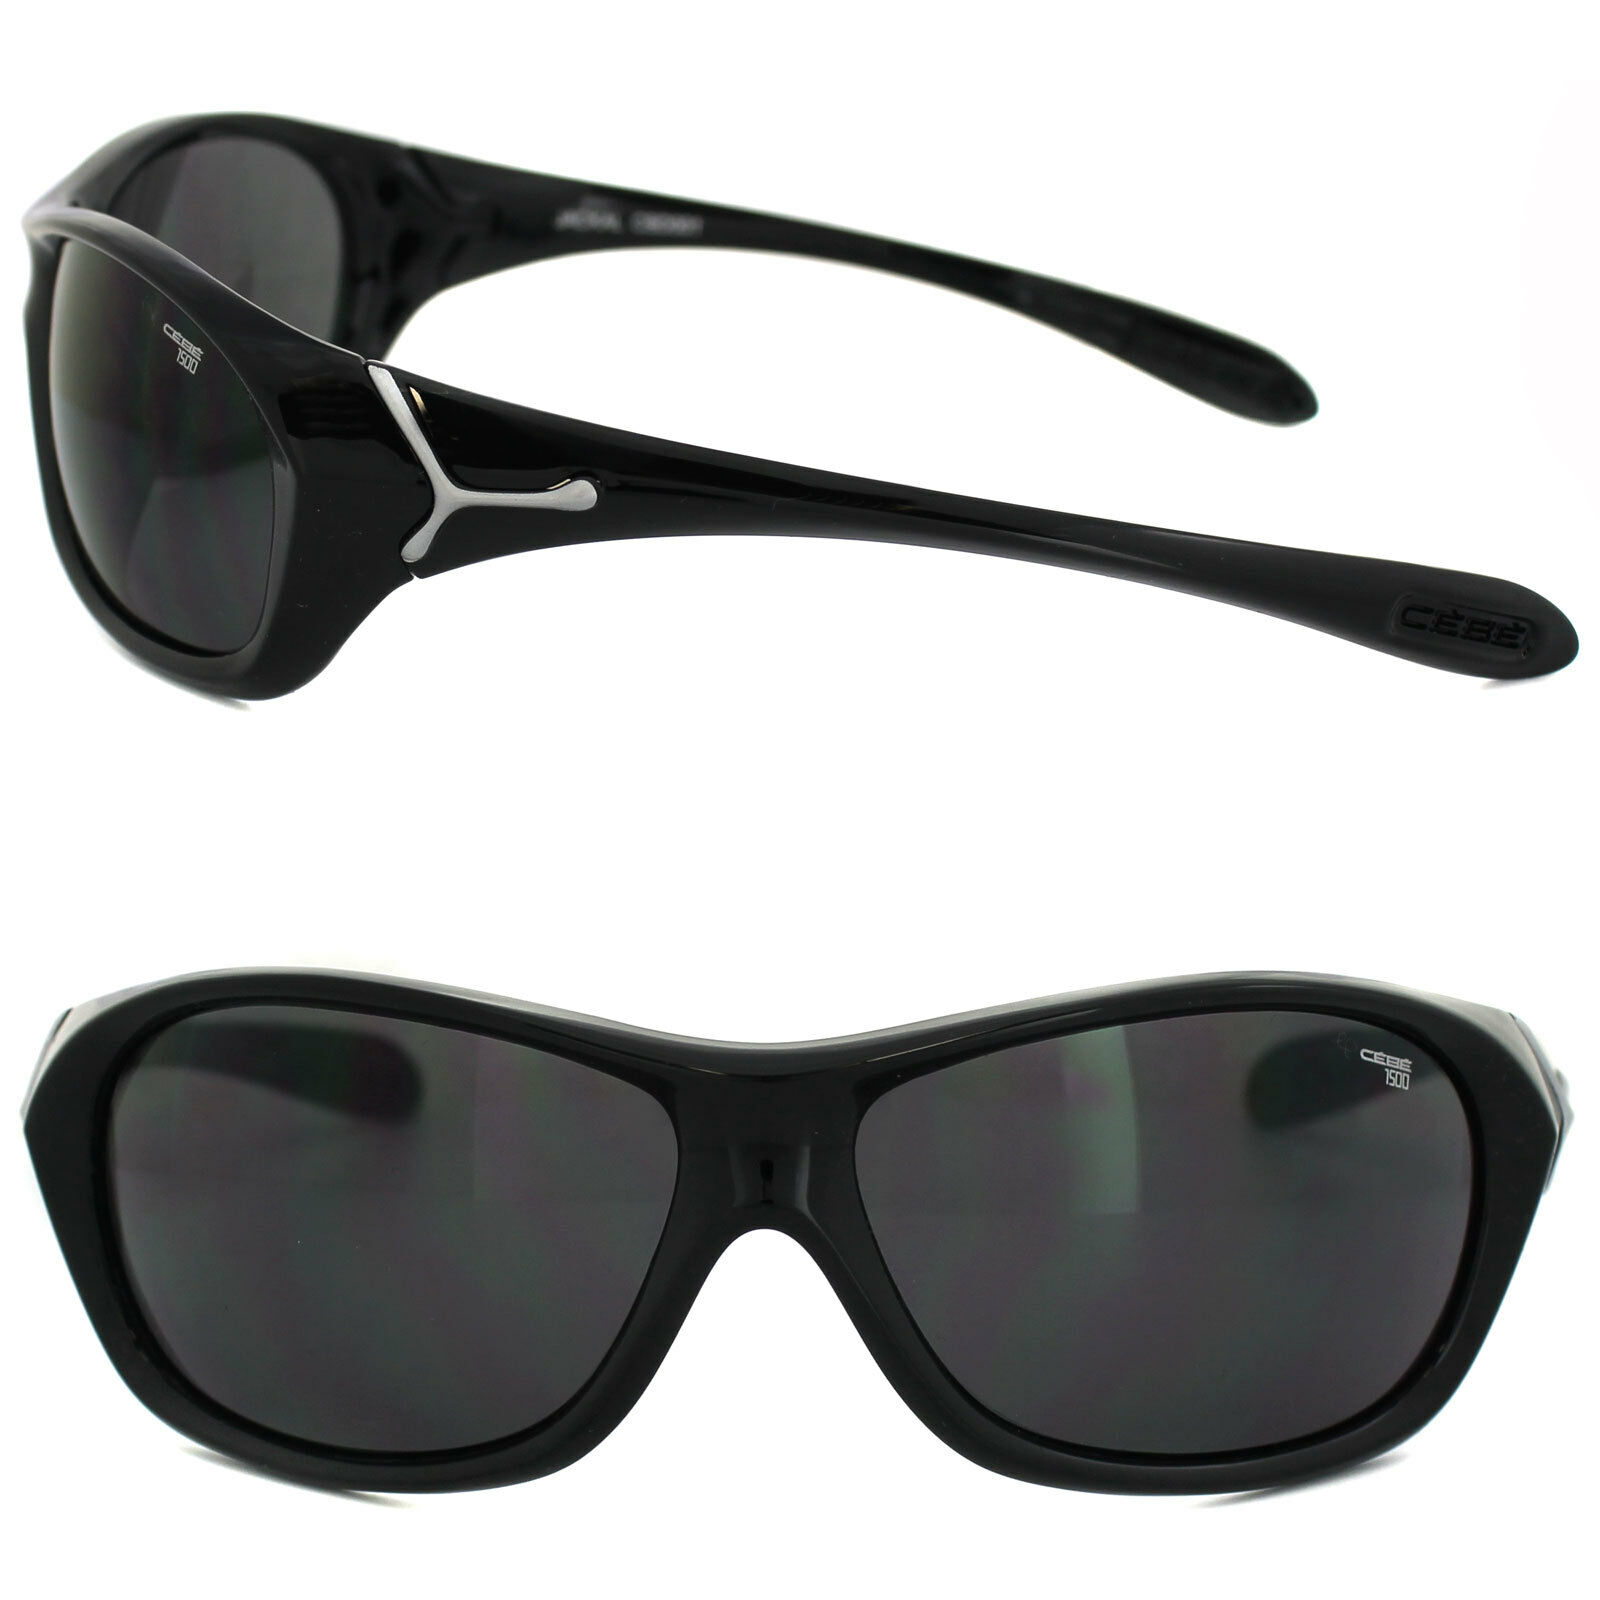 950cfe55c6410d CEBE Sunglasses Jackal 1500 Black Grey Cat 3 CBD001   eBay